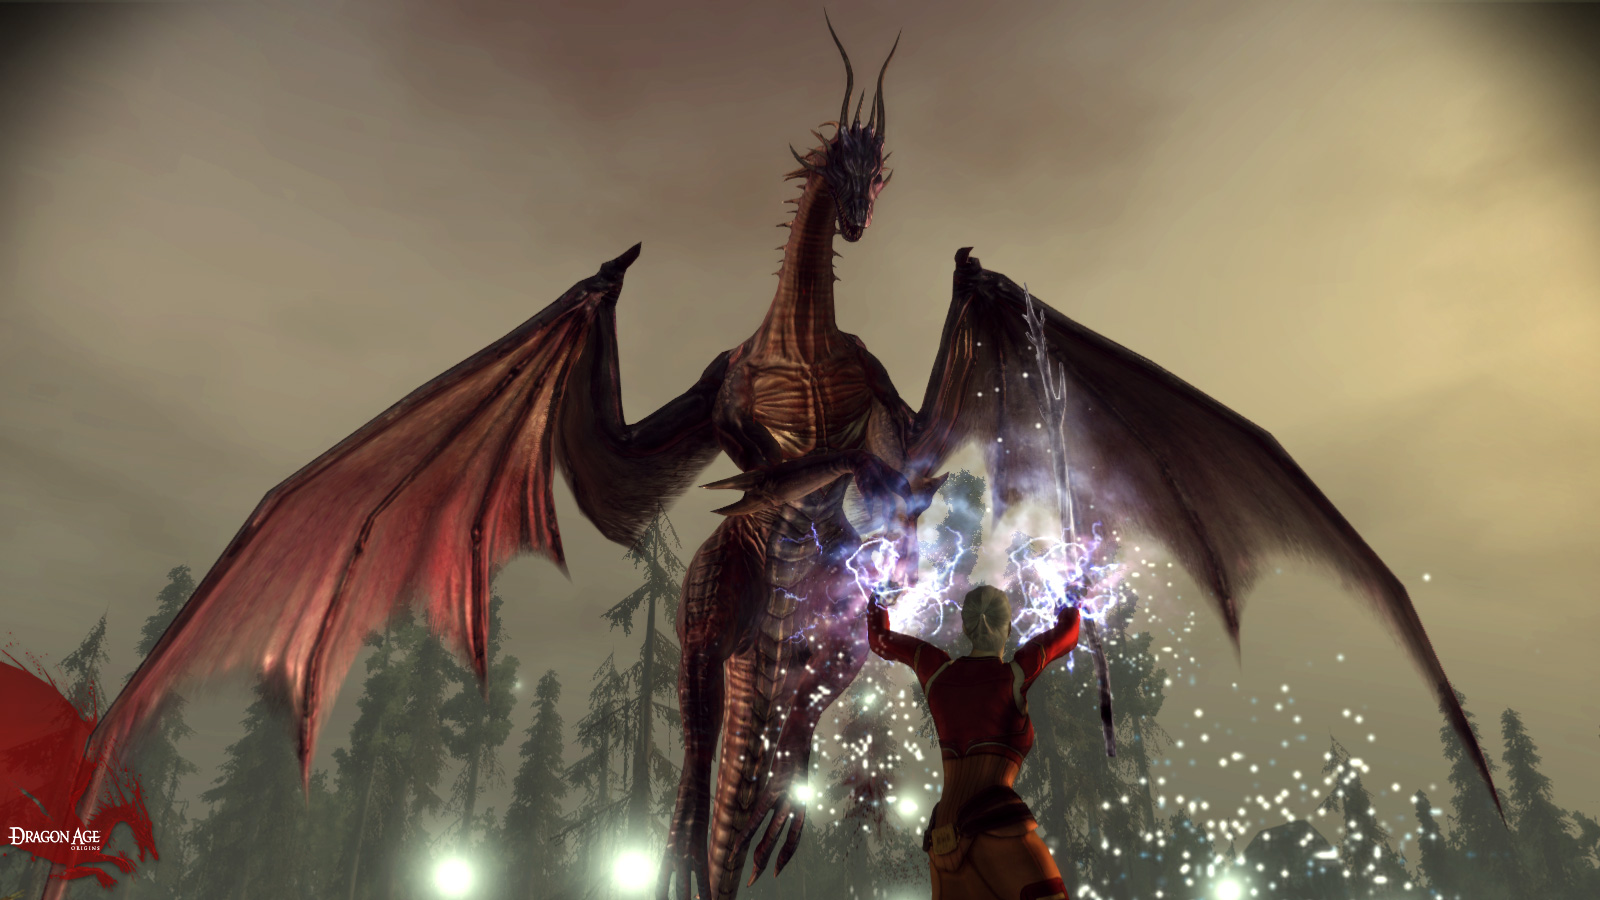 dragonage,how-to-train-fantasy, epic, animal, myth, your-dragon-3d-movie-review-blog-trailer,Dragon HD Wallpaper